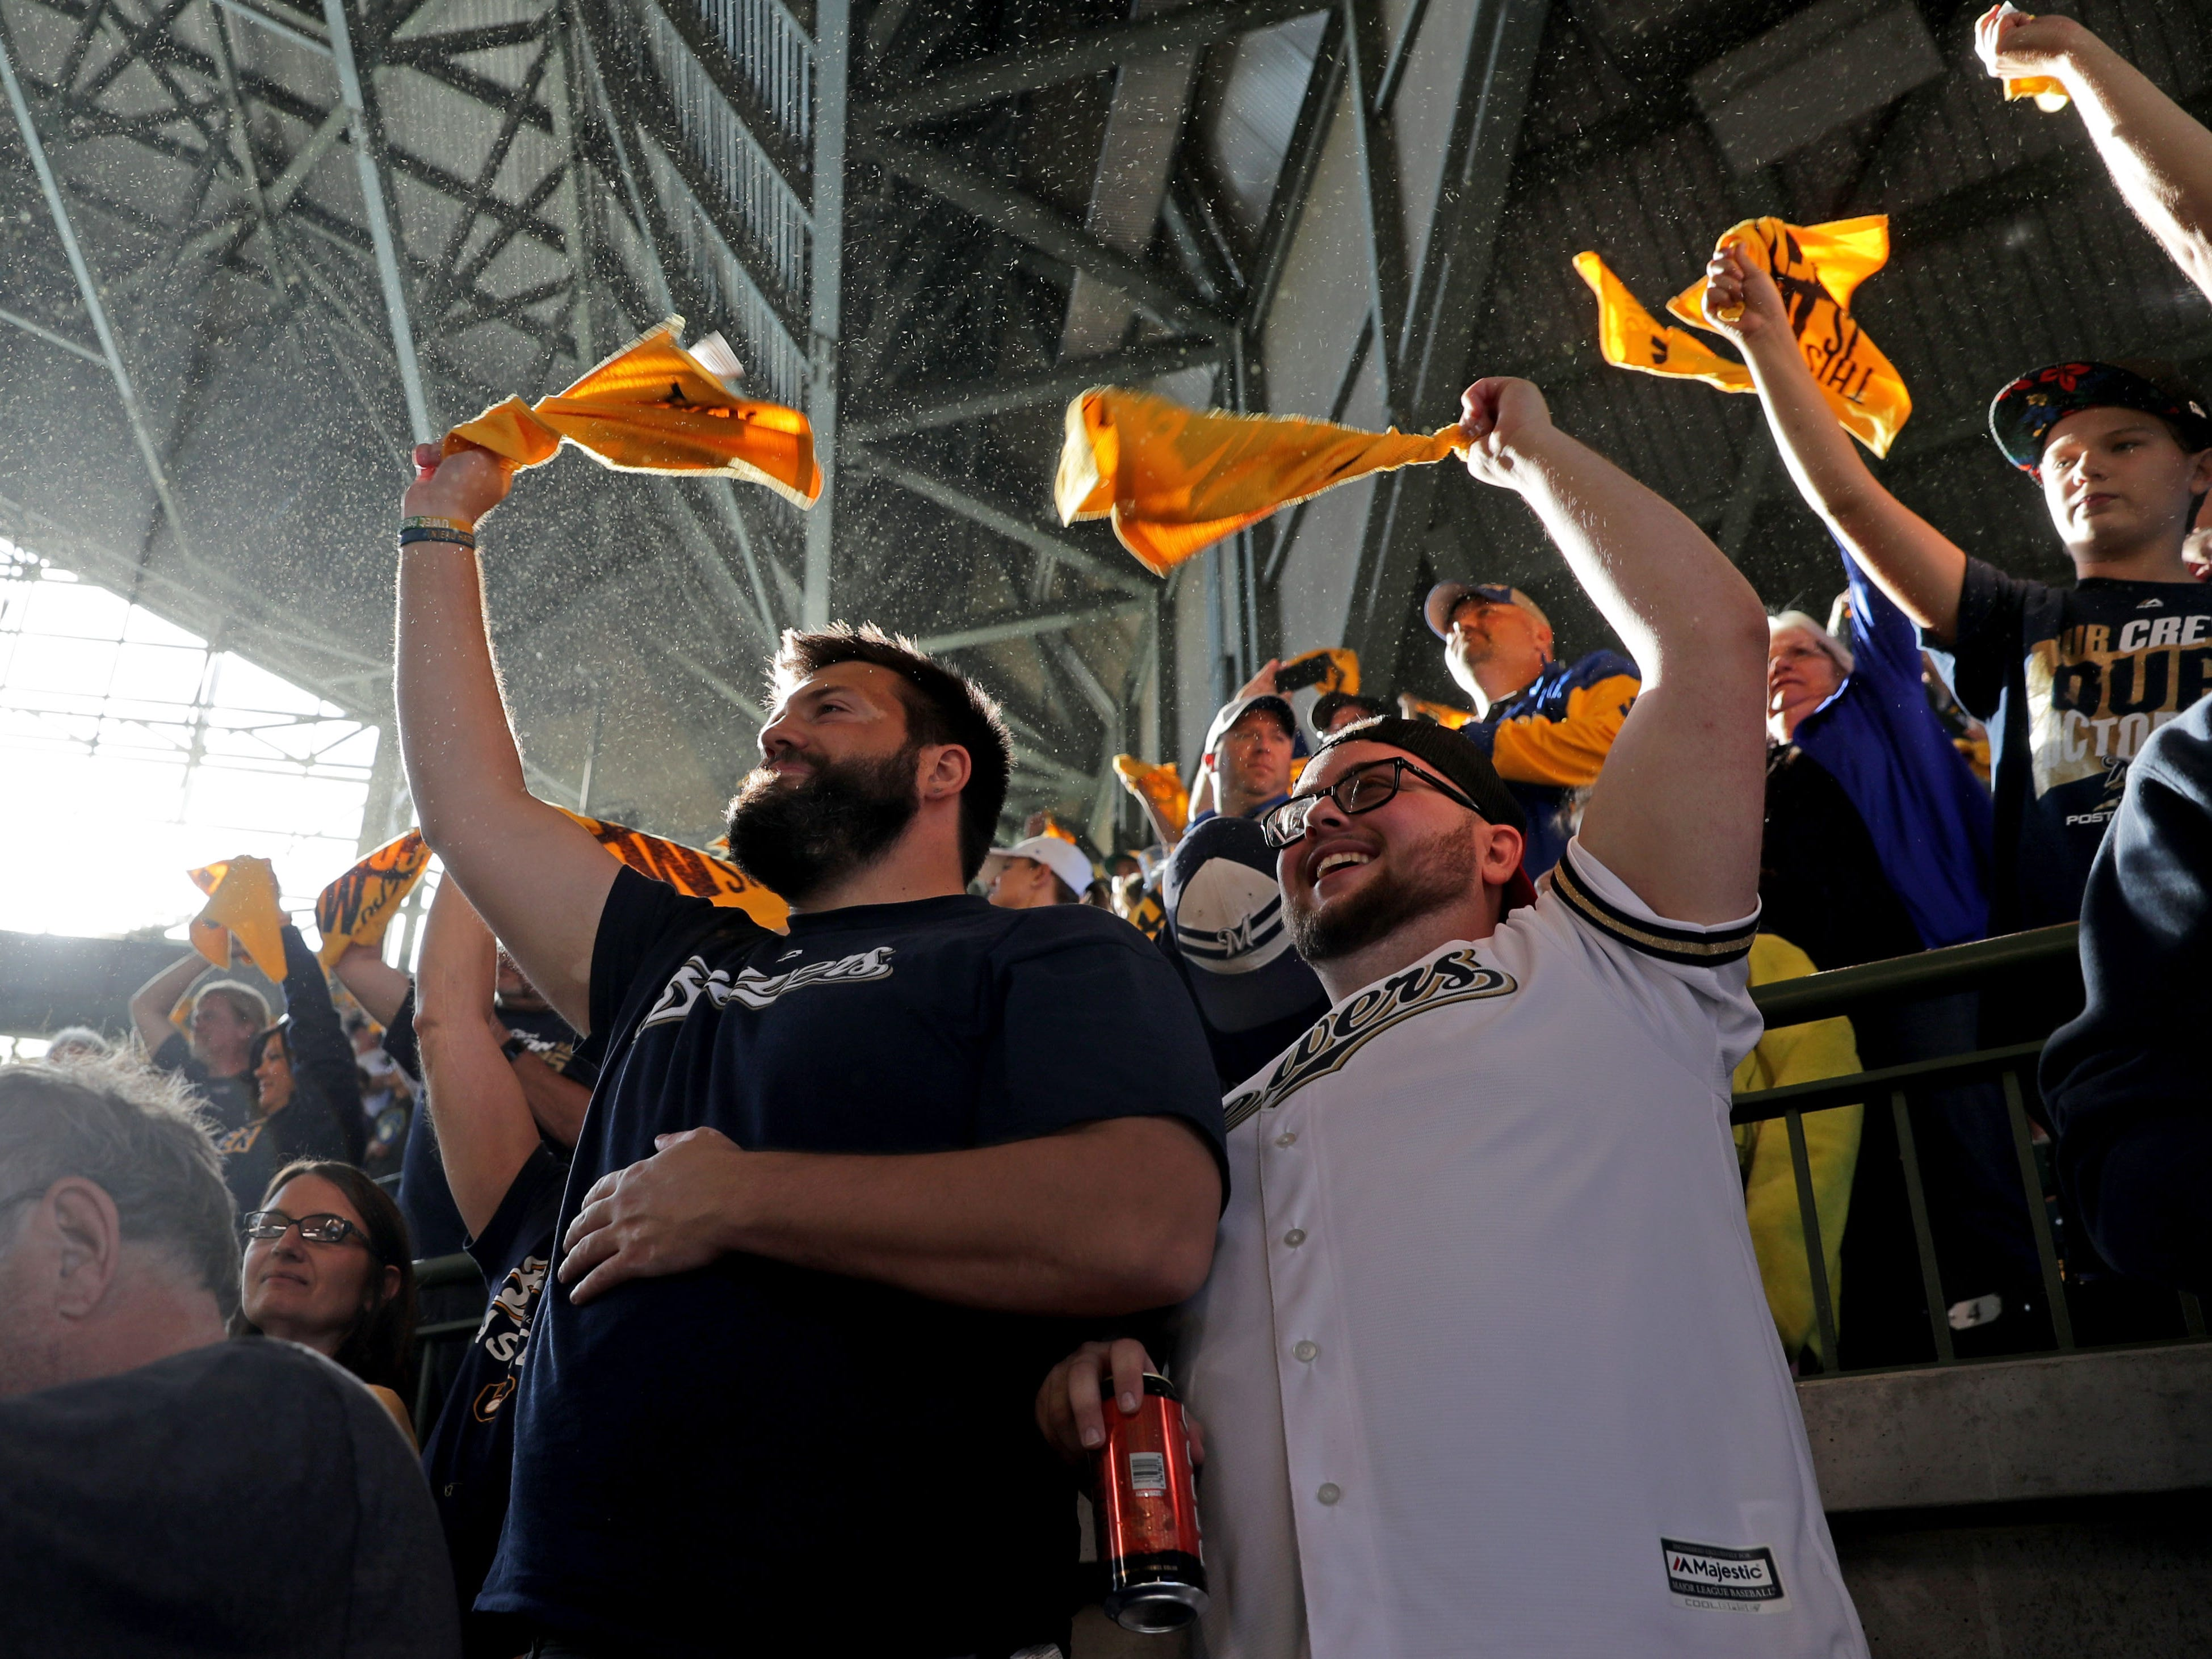 Mathew Riedel (left) and Hunter Halverson, both of Eau Claire, wave their towels before the Milwaukee Brewers' National League Divisional Series game against the Colorado Rockies on Thursday.